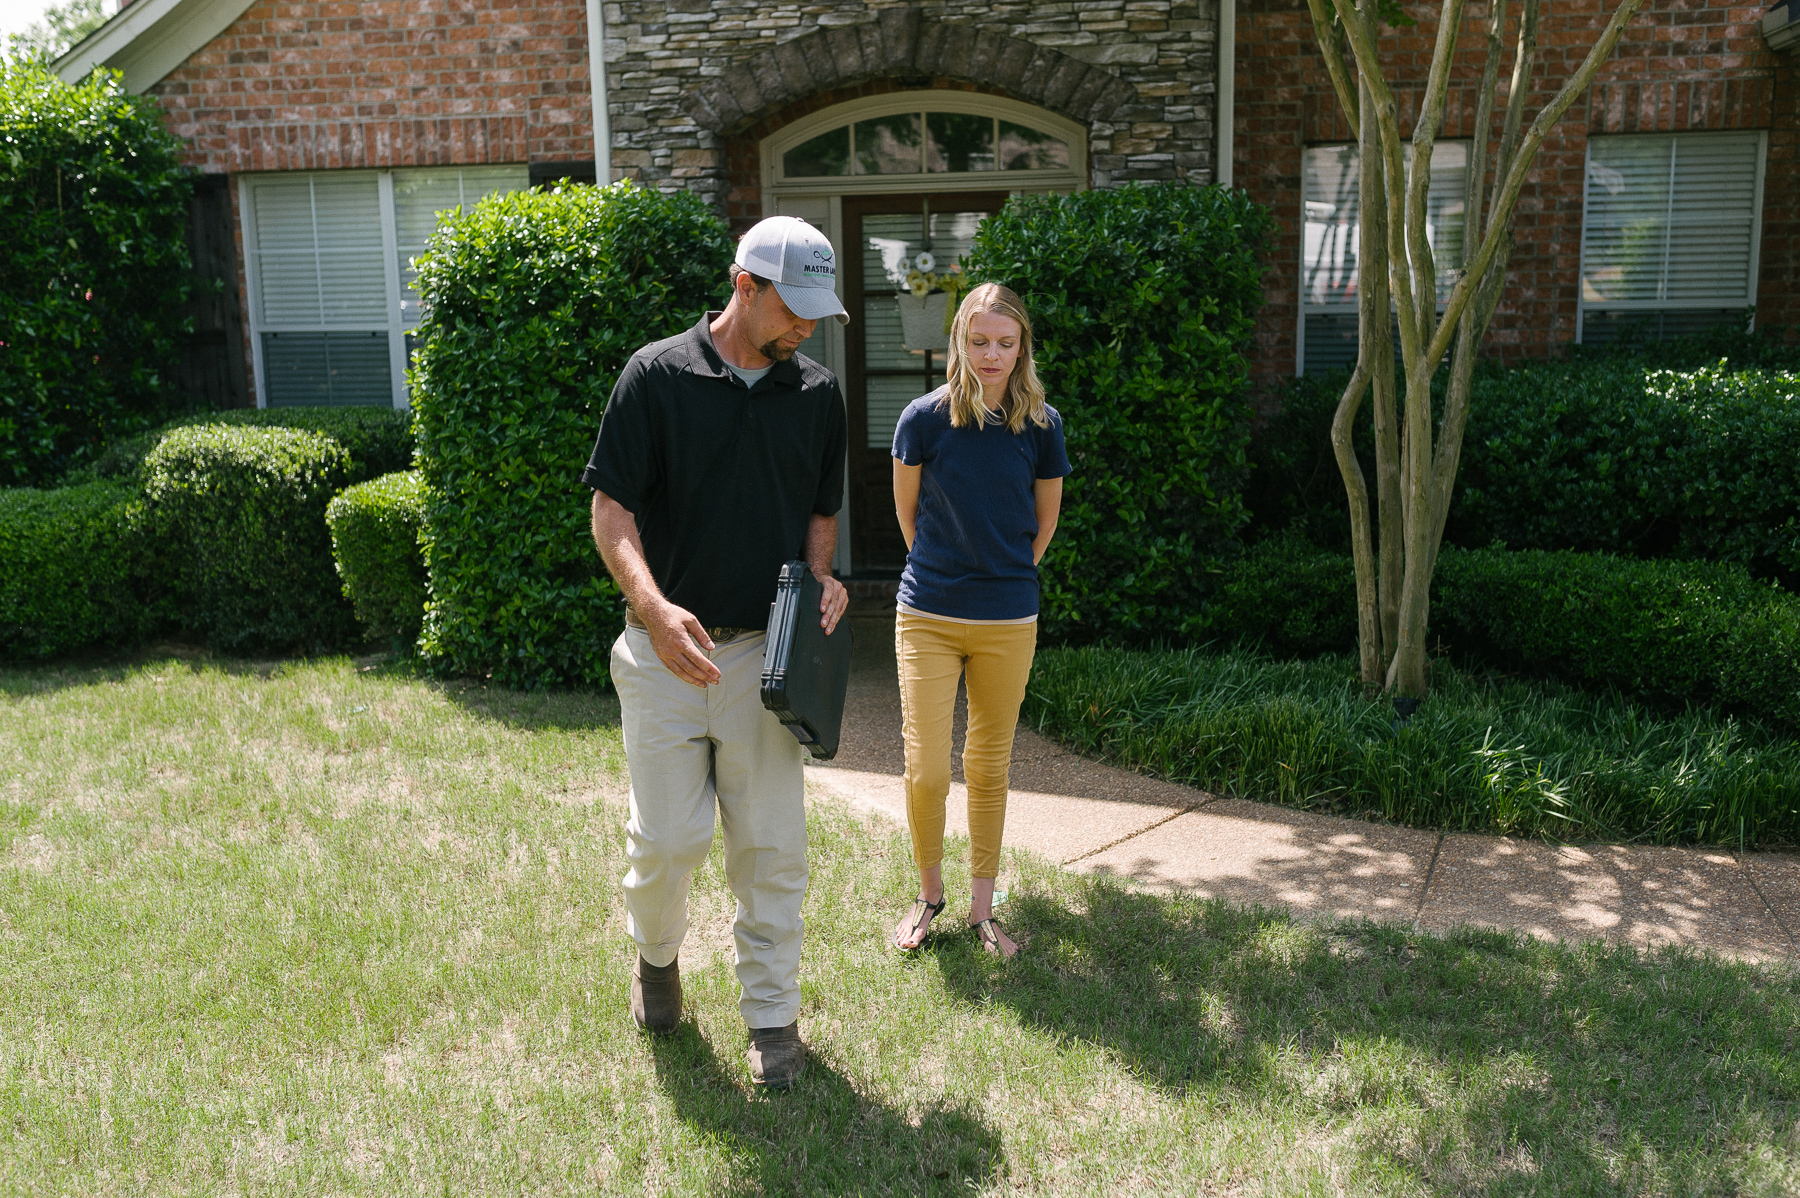 Master Lawn care technician identifying grass with customer